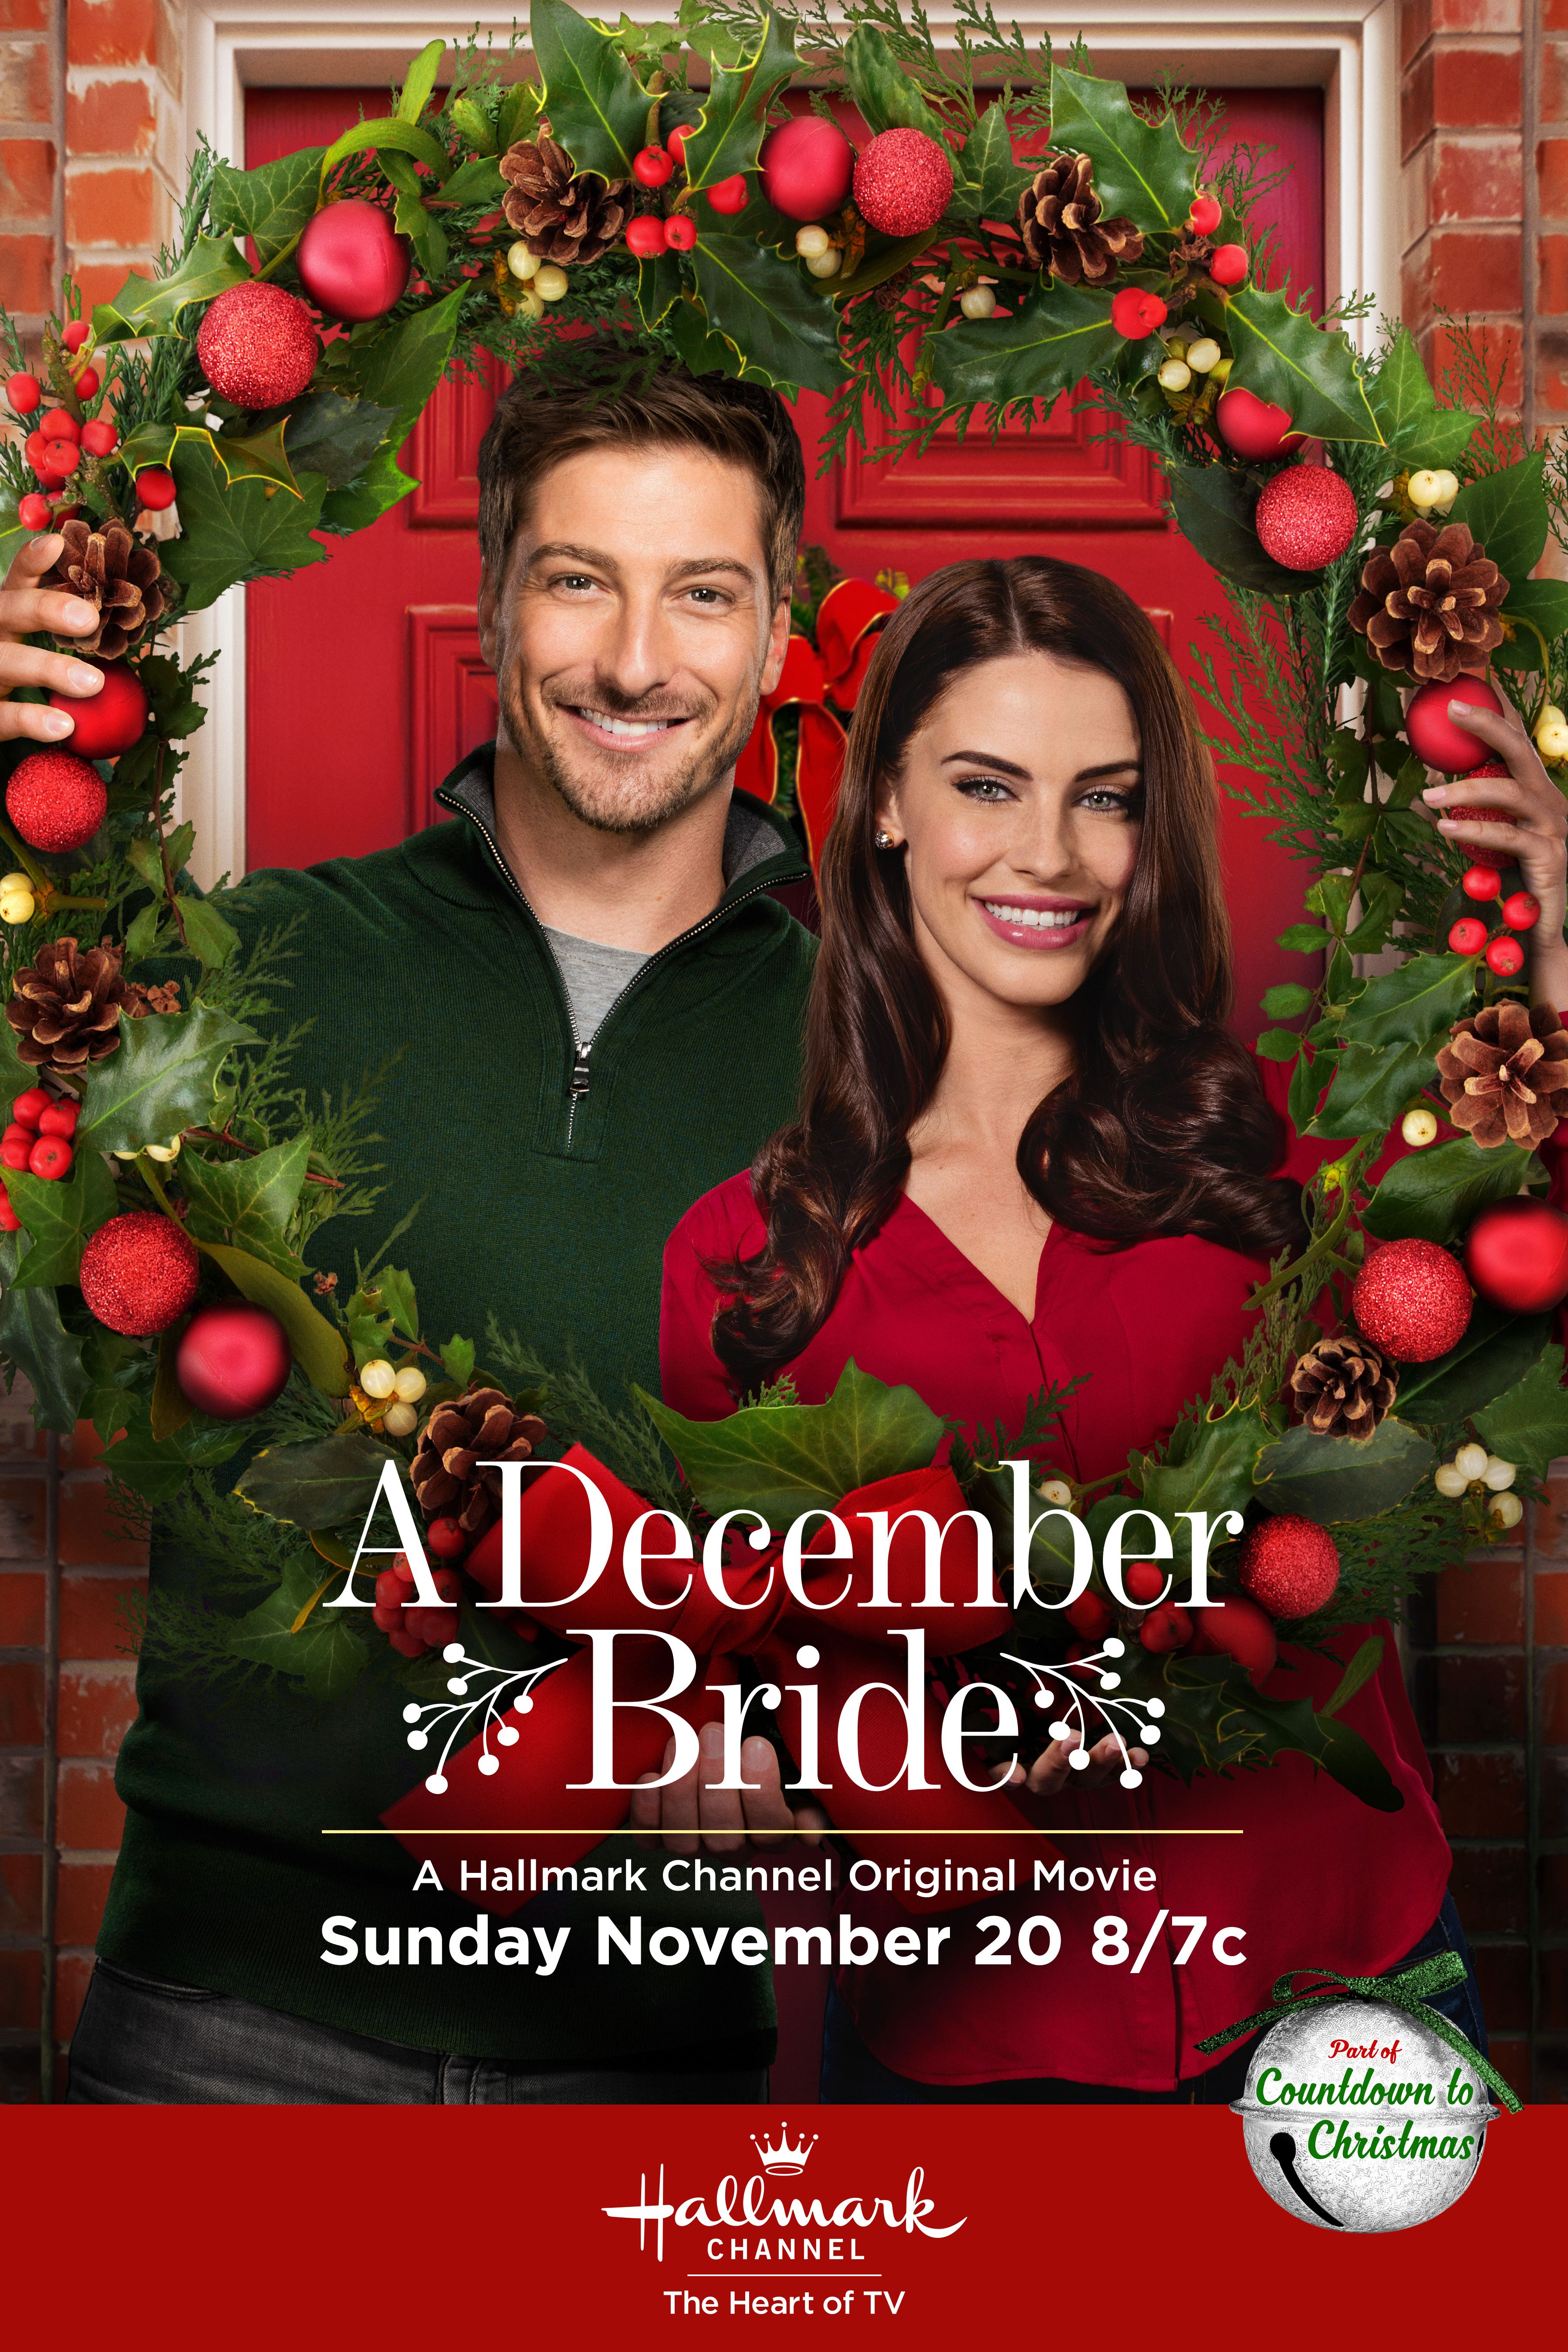 Hallmark Channel S A December Bride Was Very Heartwarming Restores Your Faith In Love During The Hallmark Christmas Movies Christmas Movies Hallmark Movies